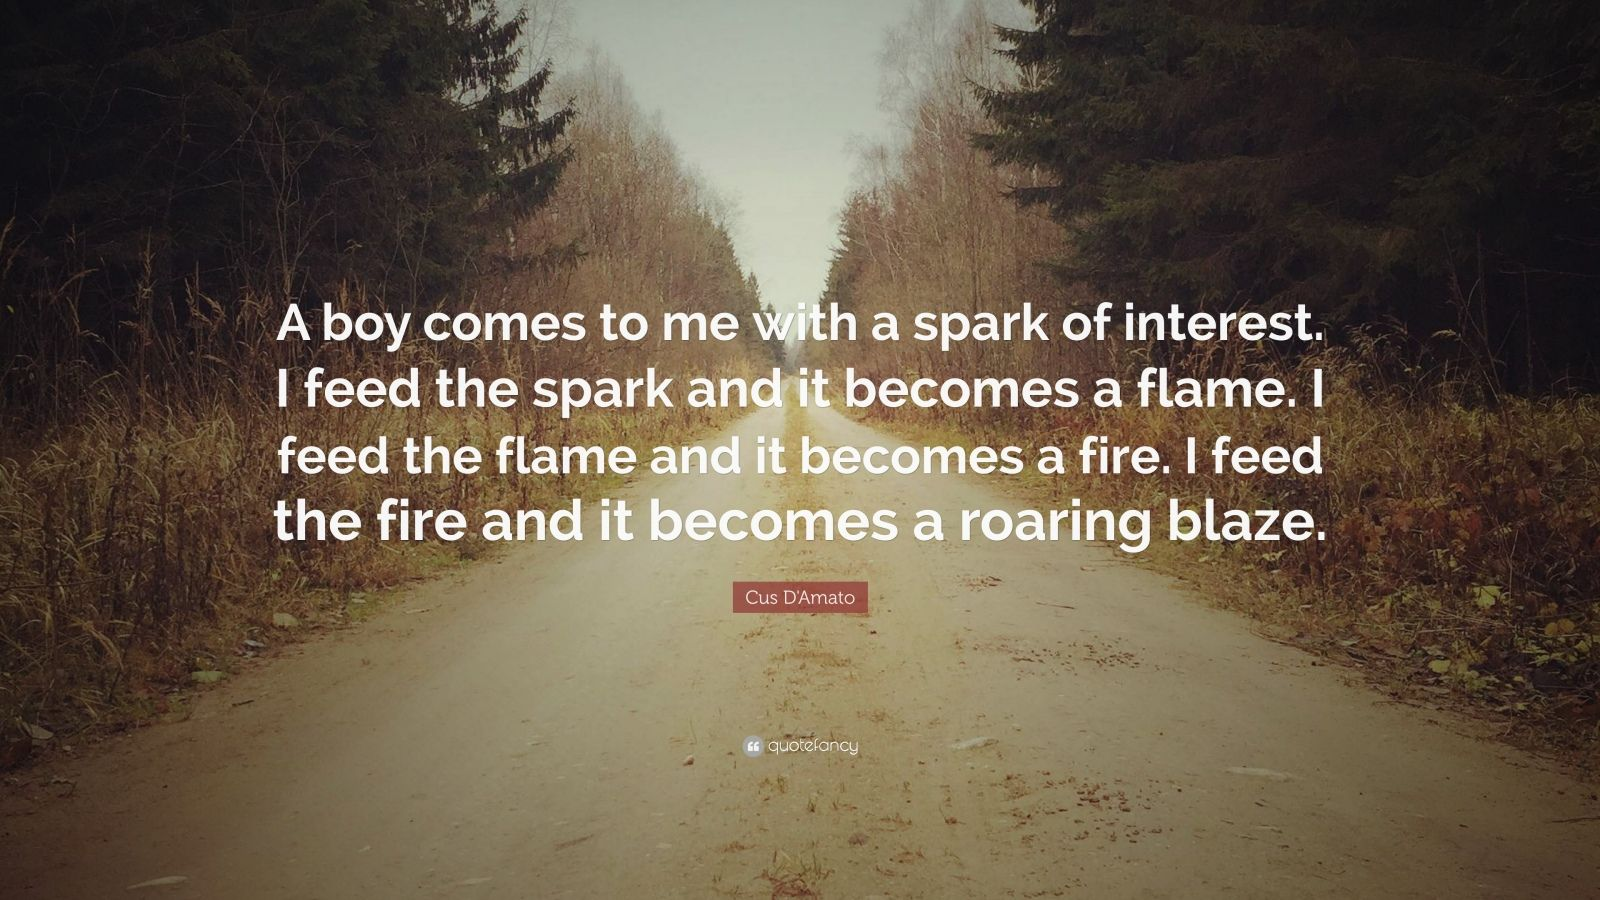 """Cus D'Amato Quote: """"A boy comes to me with a spark of interest. I feed the spark and it becomes a flame. I feed the flame and it becomes a fire. I feed the fire and it becomes a roaring blaze."""""""